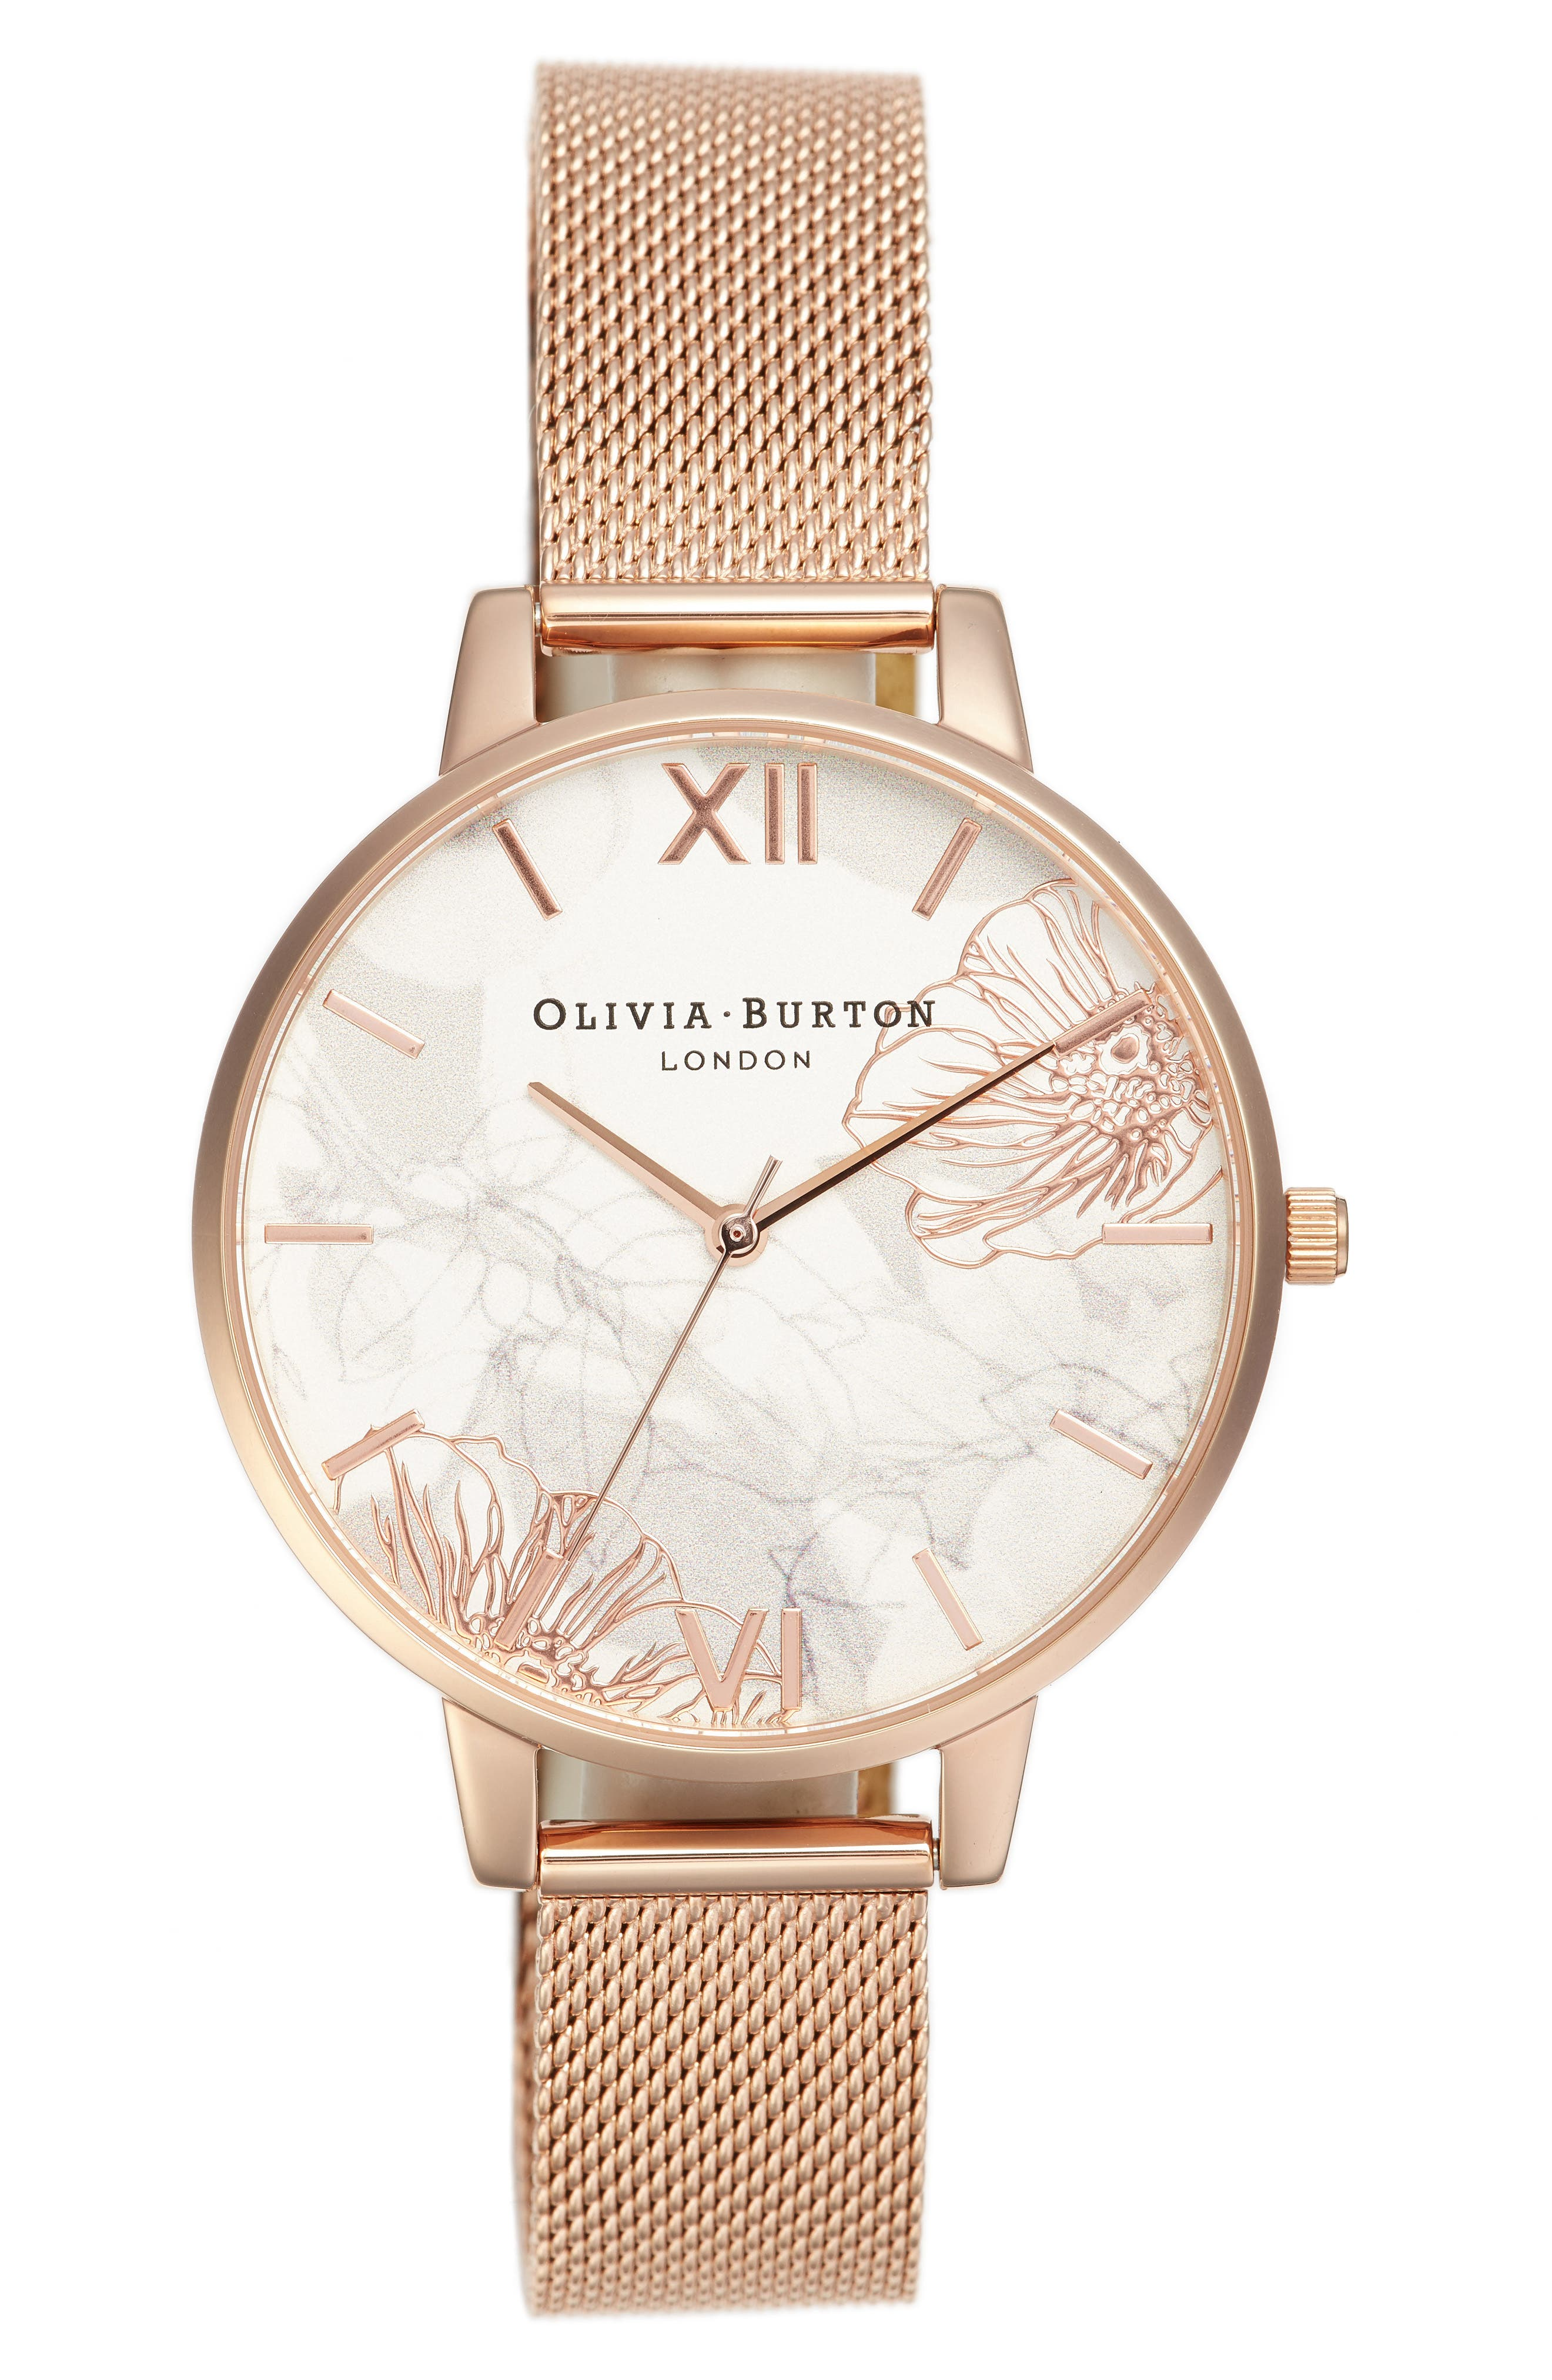 OLIVIA BURTON, Oliva Burton Abstract Florals Mesh Bracelet Watch, 38mm, Main thumbnail 1, color, ROSE GOLD